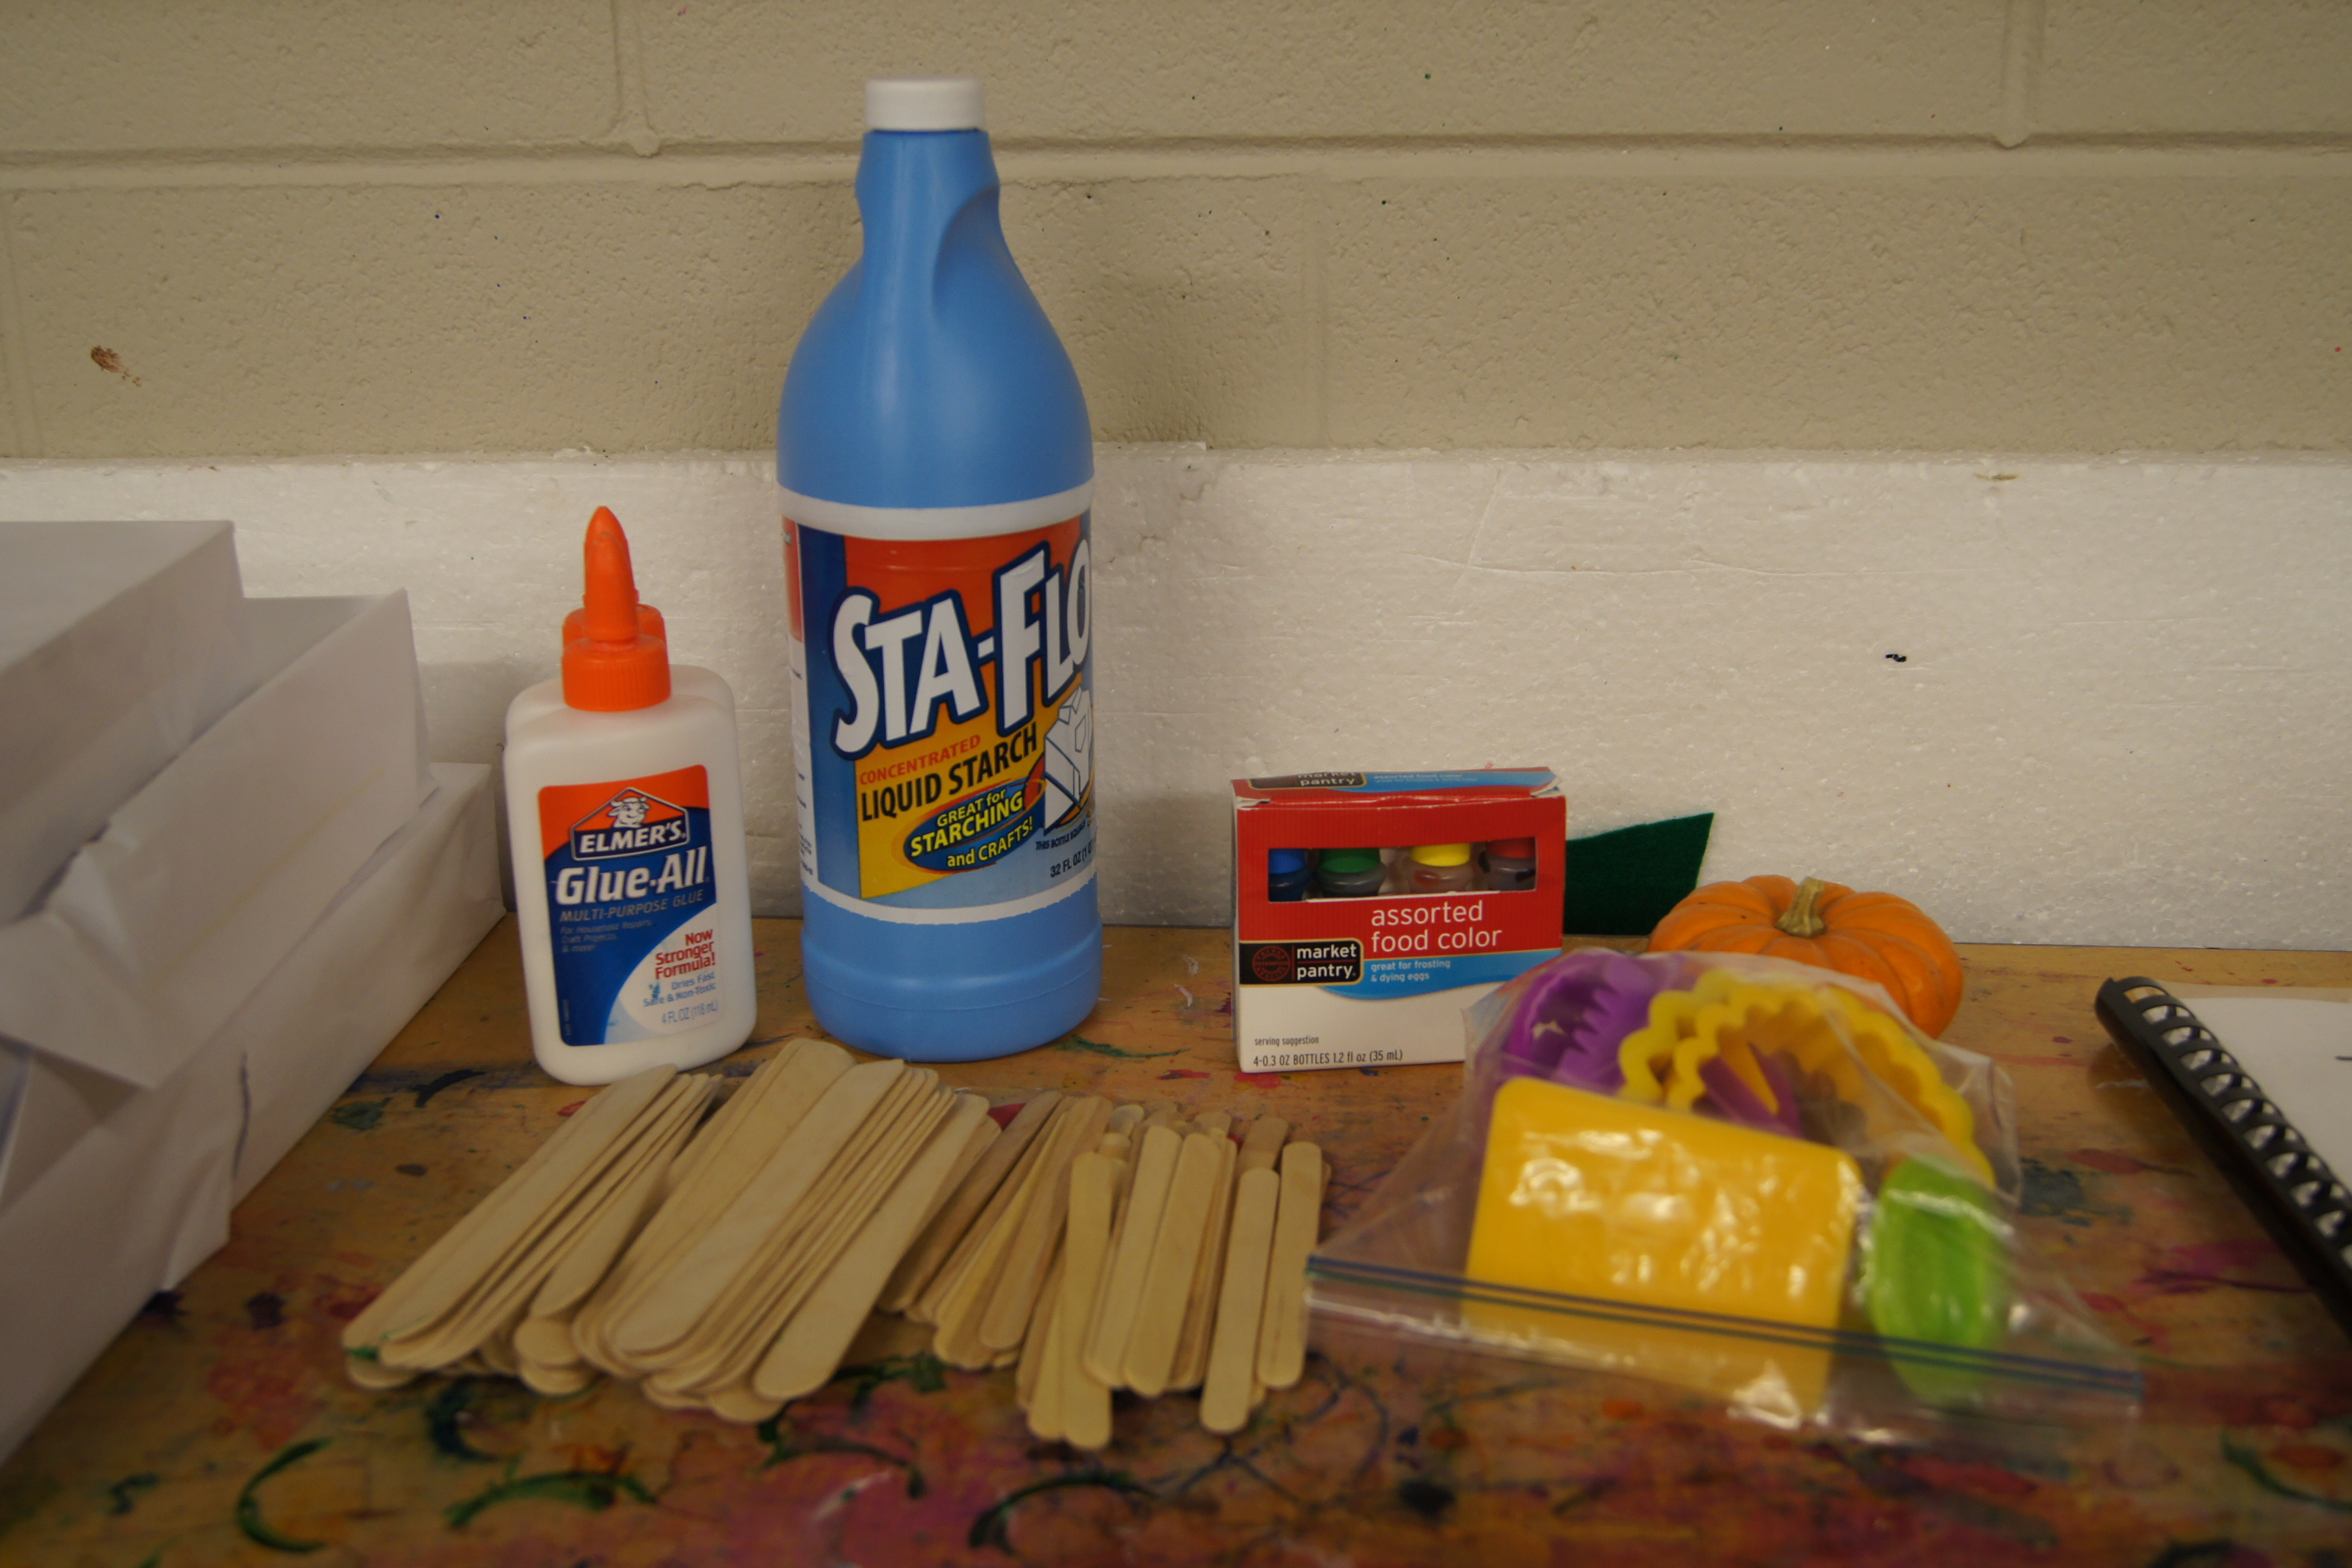 How To Make Slime Sensory Activity For Kids Here Are The Supplies We Used:  Liquid Starch, School Glue, And Food Coloring